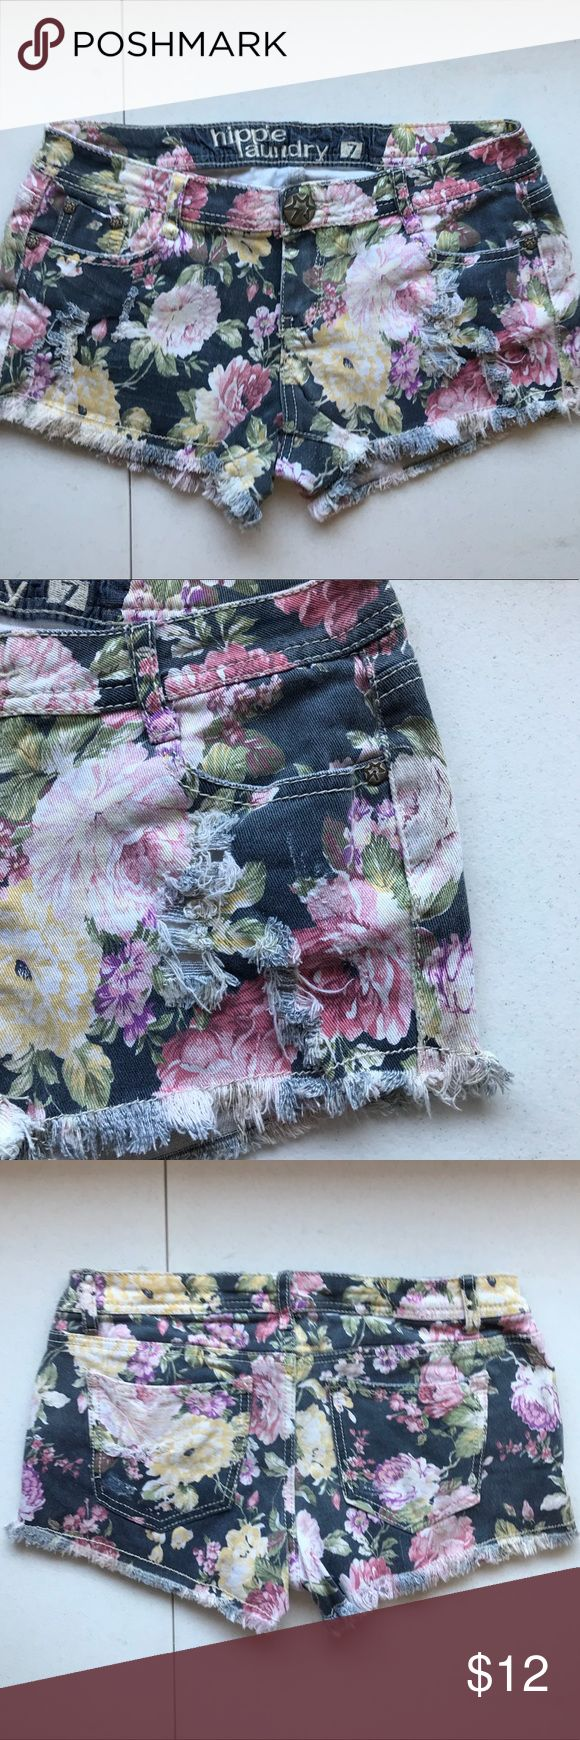 """Hippie Laundry distressed floral shorts Hippie Laundry brand floral shorts. Distressing on front of shorts. Front pockets. Plain rear pockets. 2"""" inseam. 7"""" rise. Approximately 15"""" across waistband when measured laid flat. 99% cotton/1% spandex. Please ask for additional information if needed before purchase. hippie laundry Shorts"""